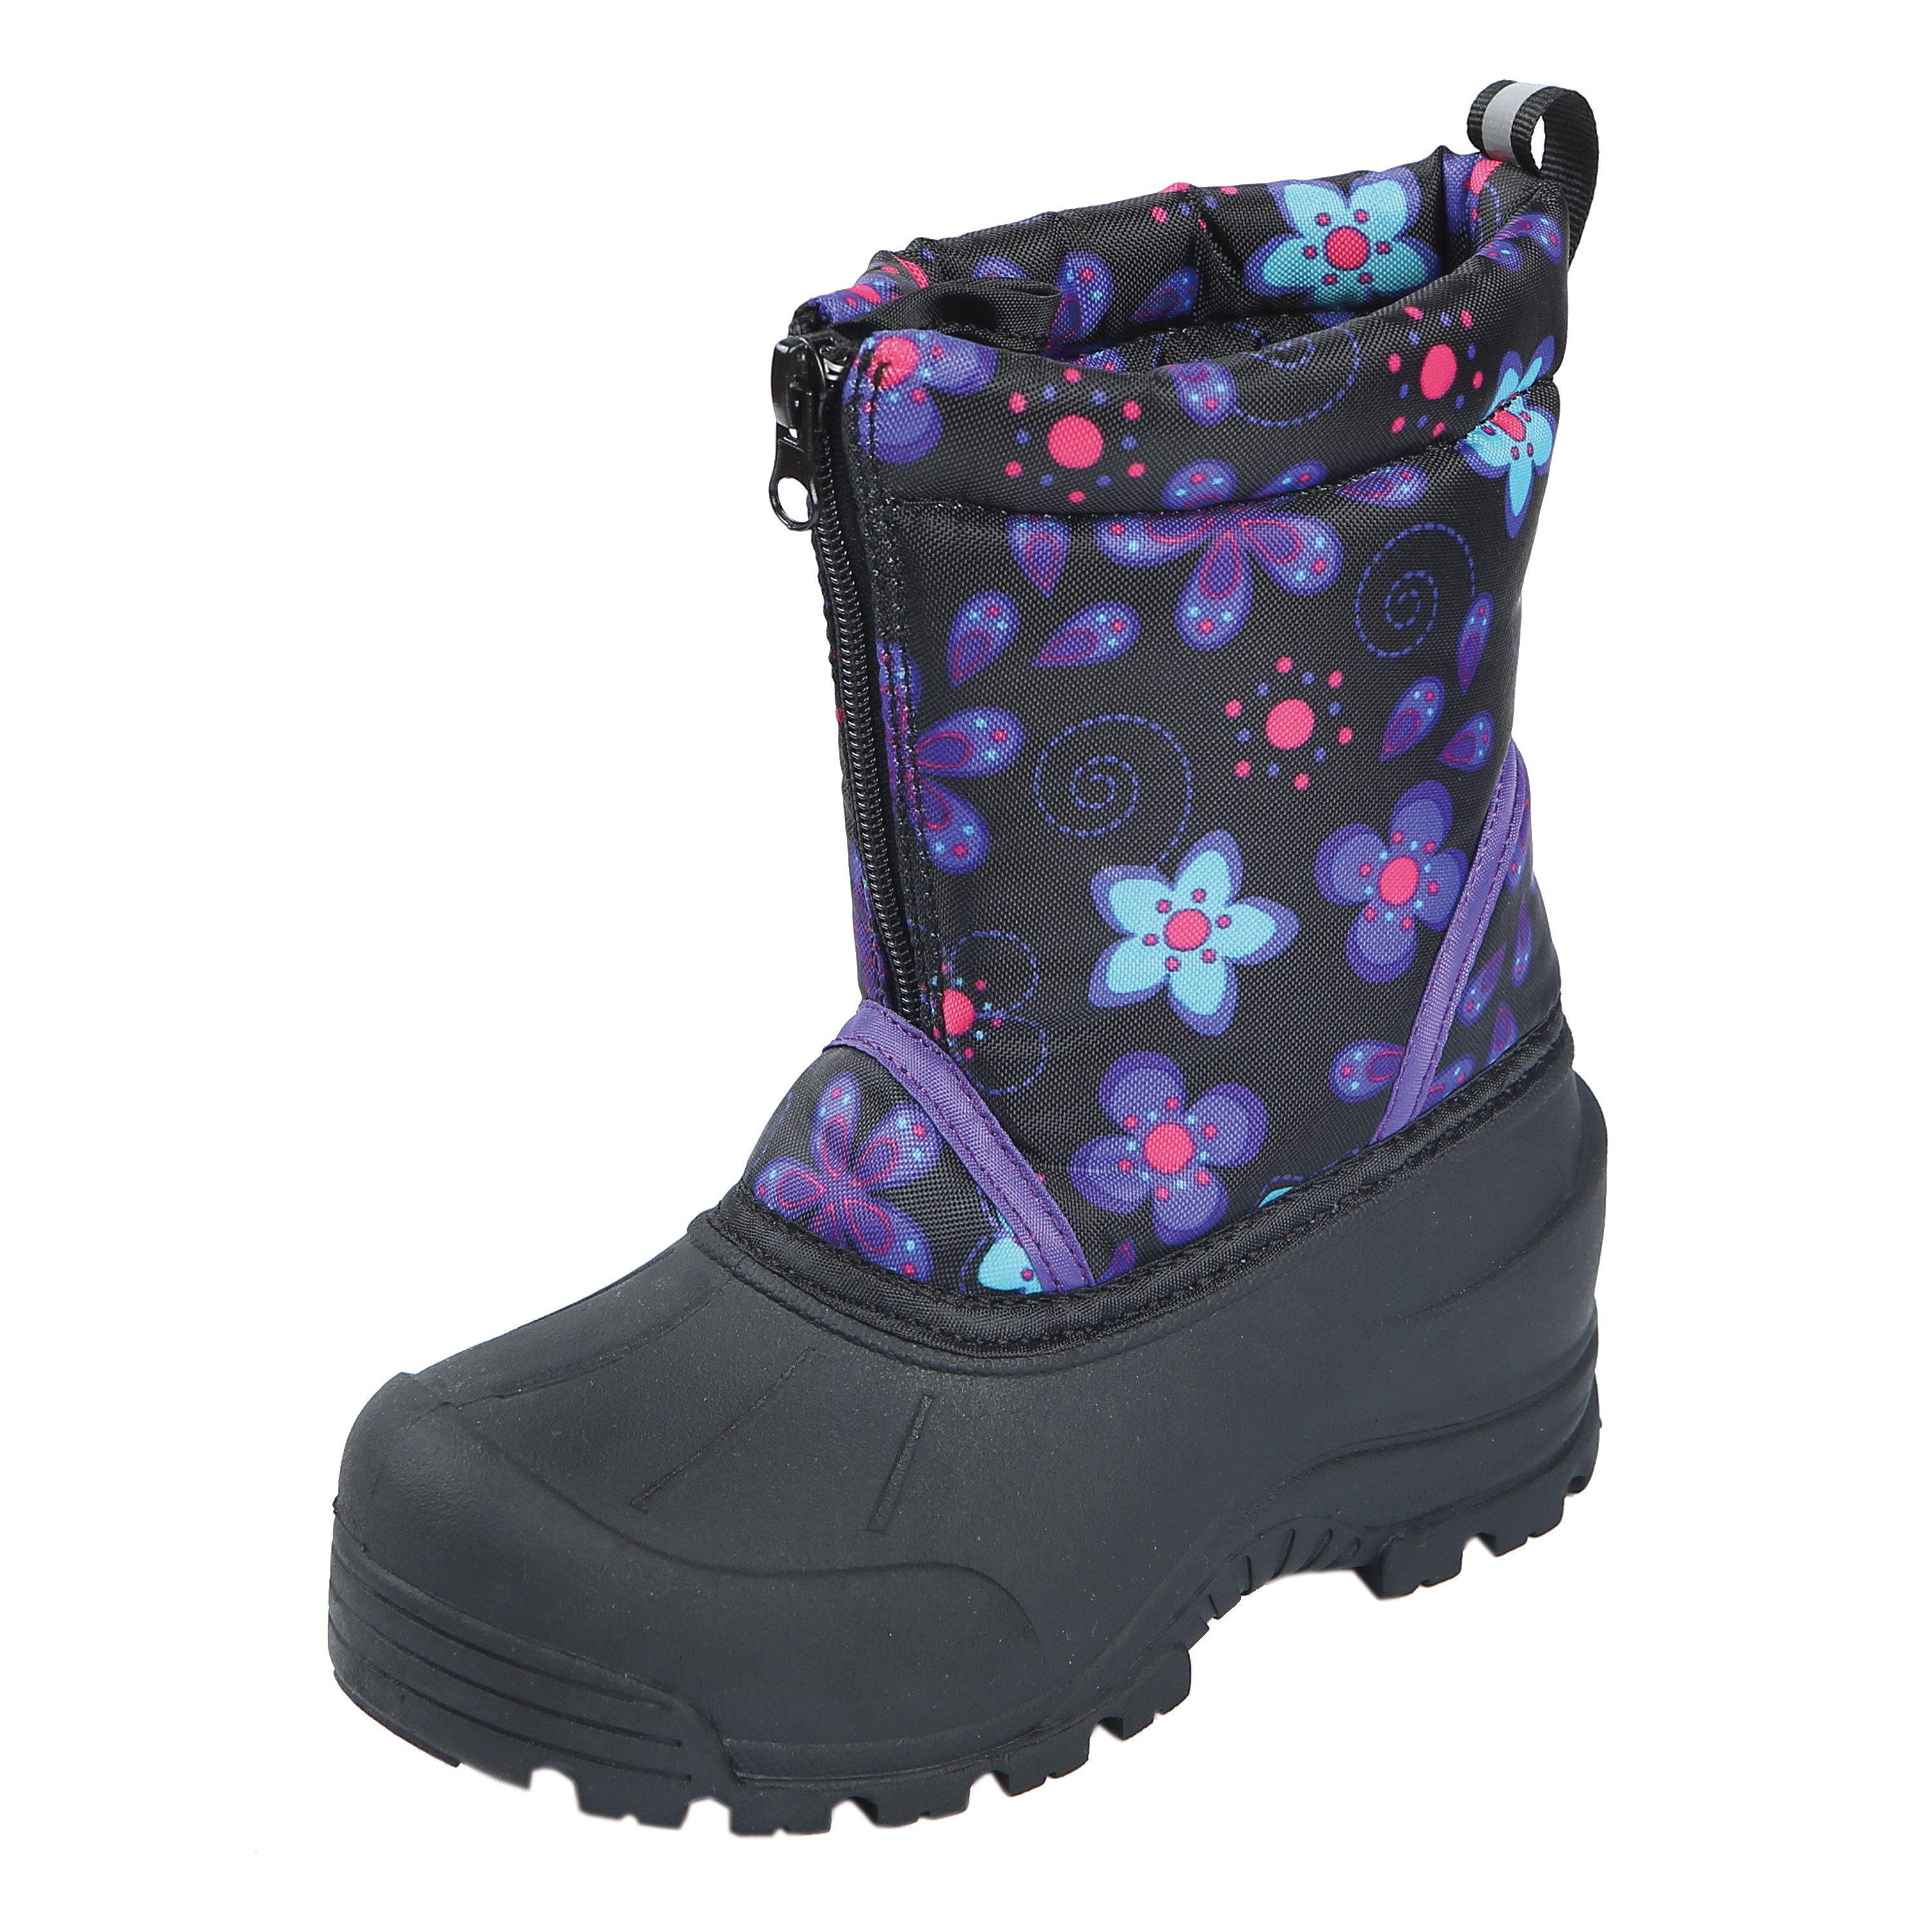 Northside Kids Icicle Waterproof Insulated Winter Snow Boot Toddler/Little Kid/Big Kid